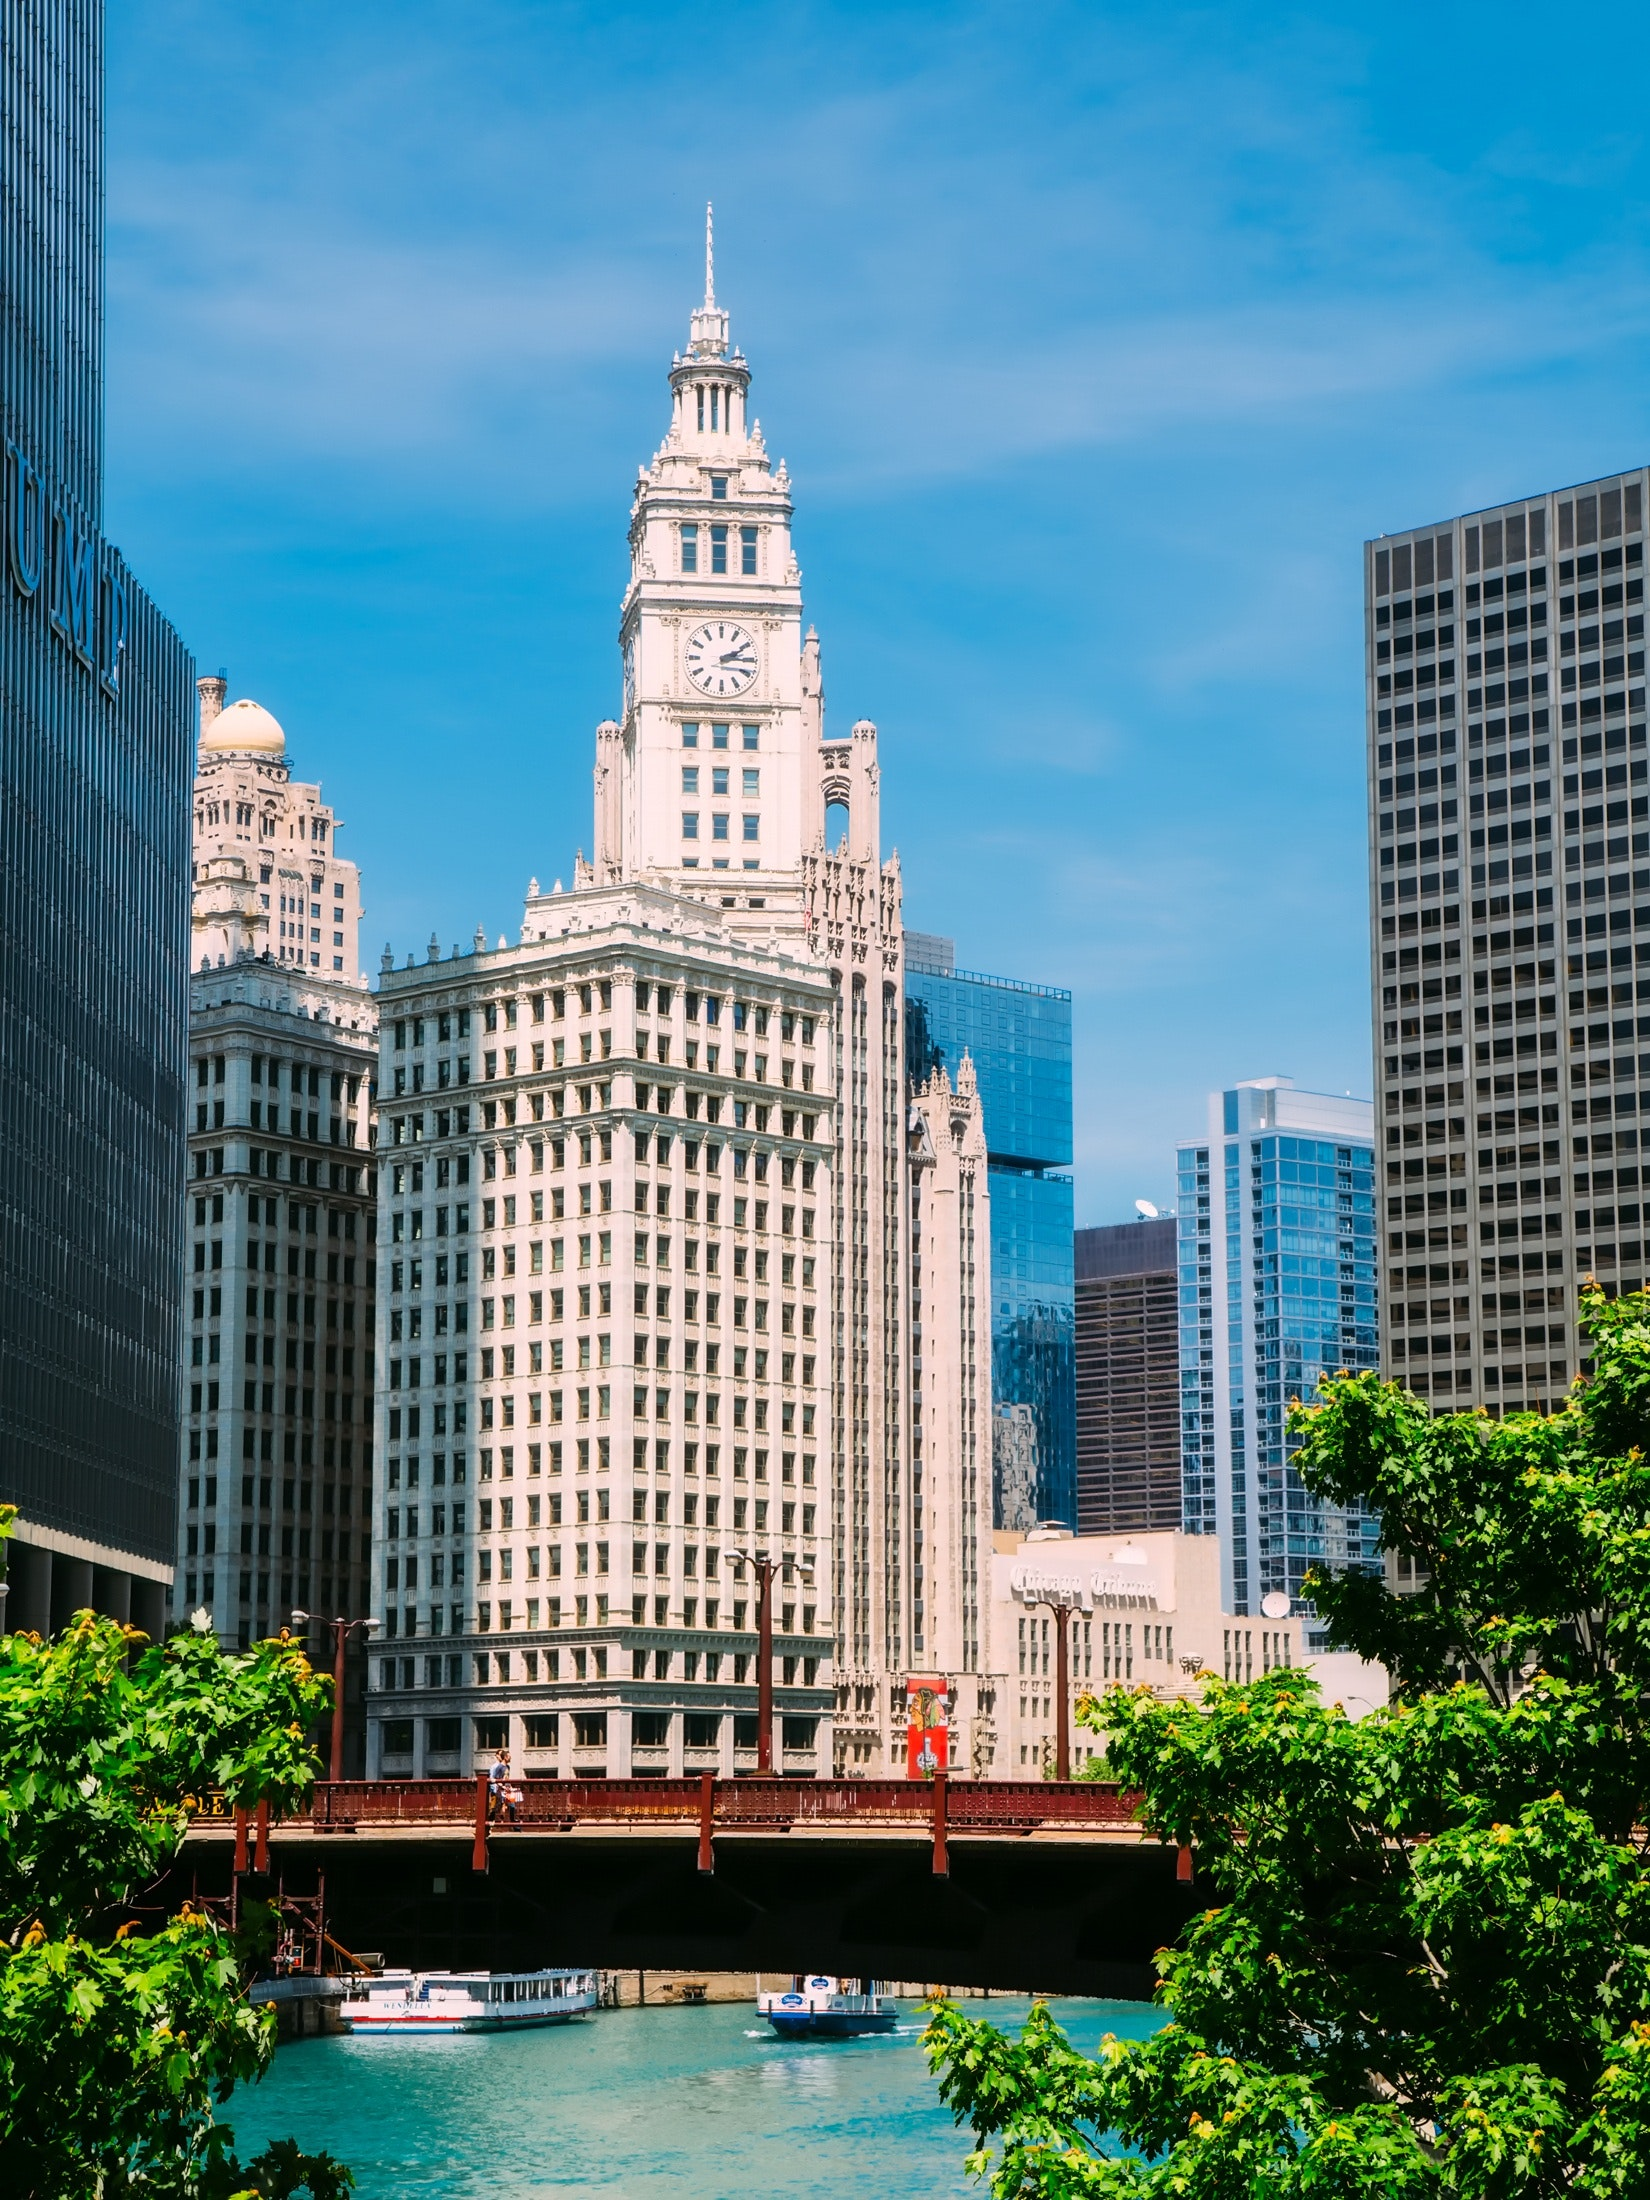 Clock tower in chicago photo